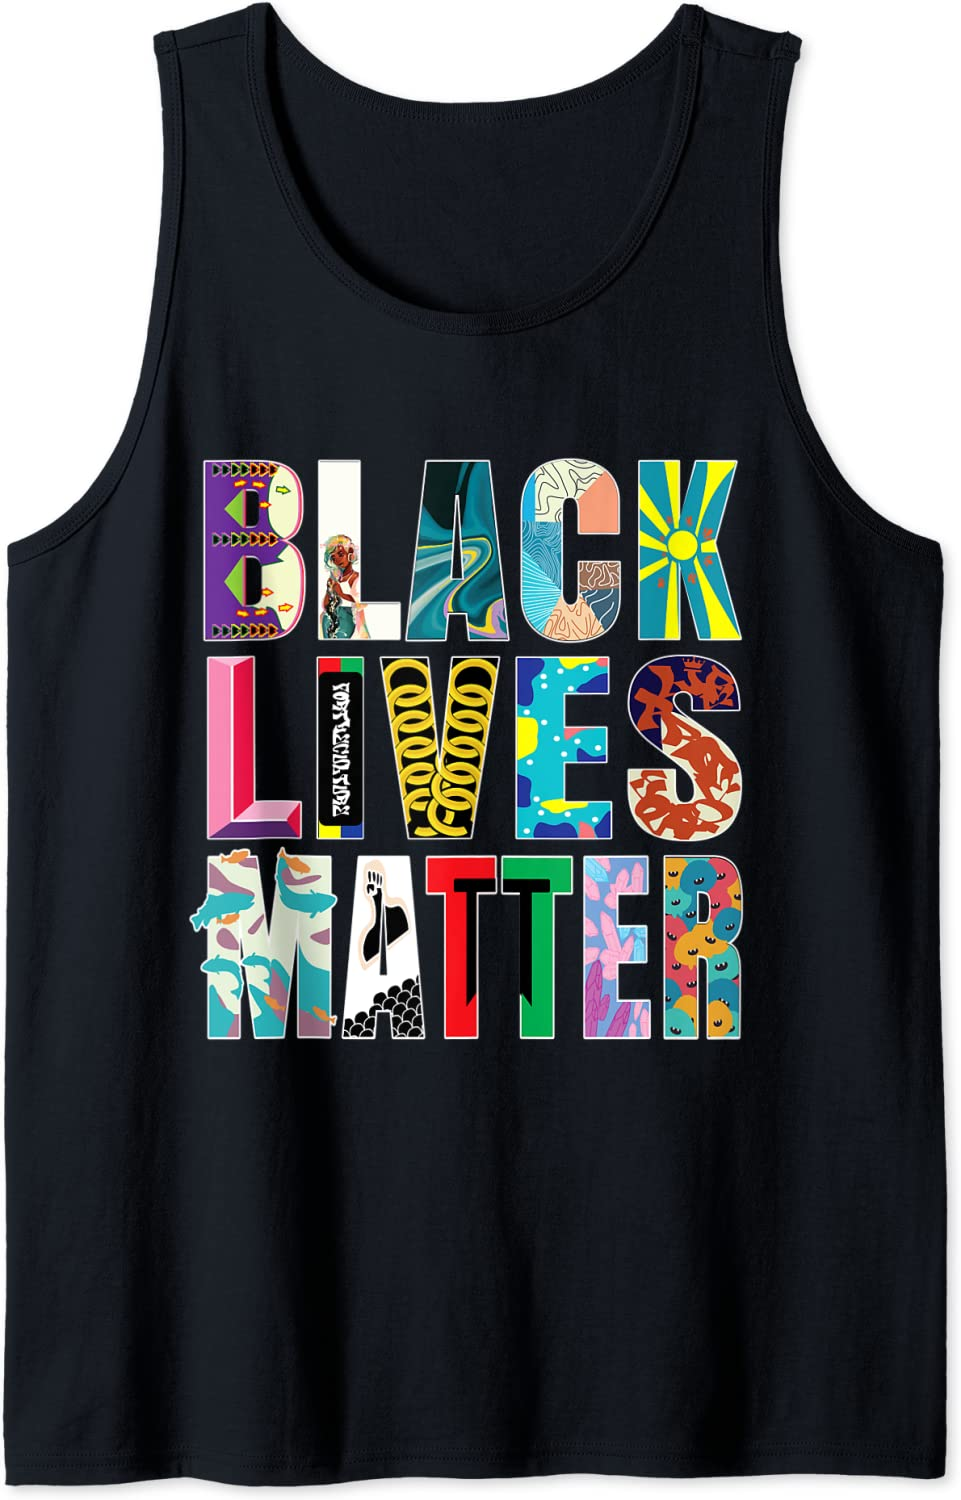 We OFFer at cheap prices Limited price sale Black Lives Matter - Tank Top Diversity Celebrate